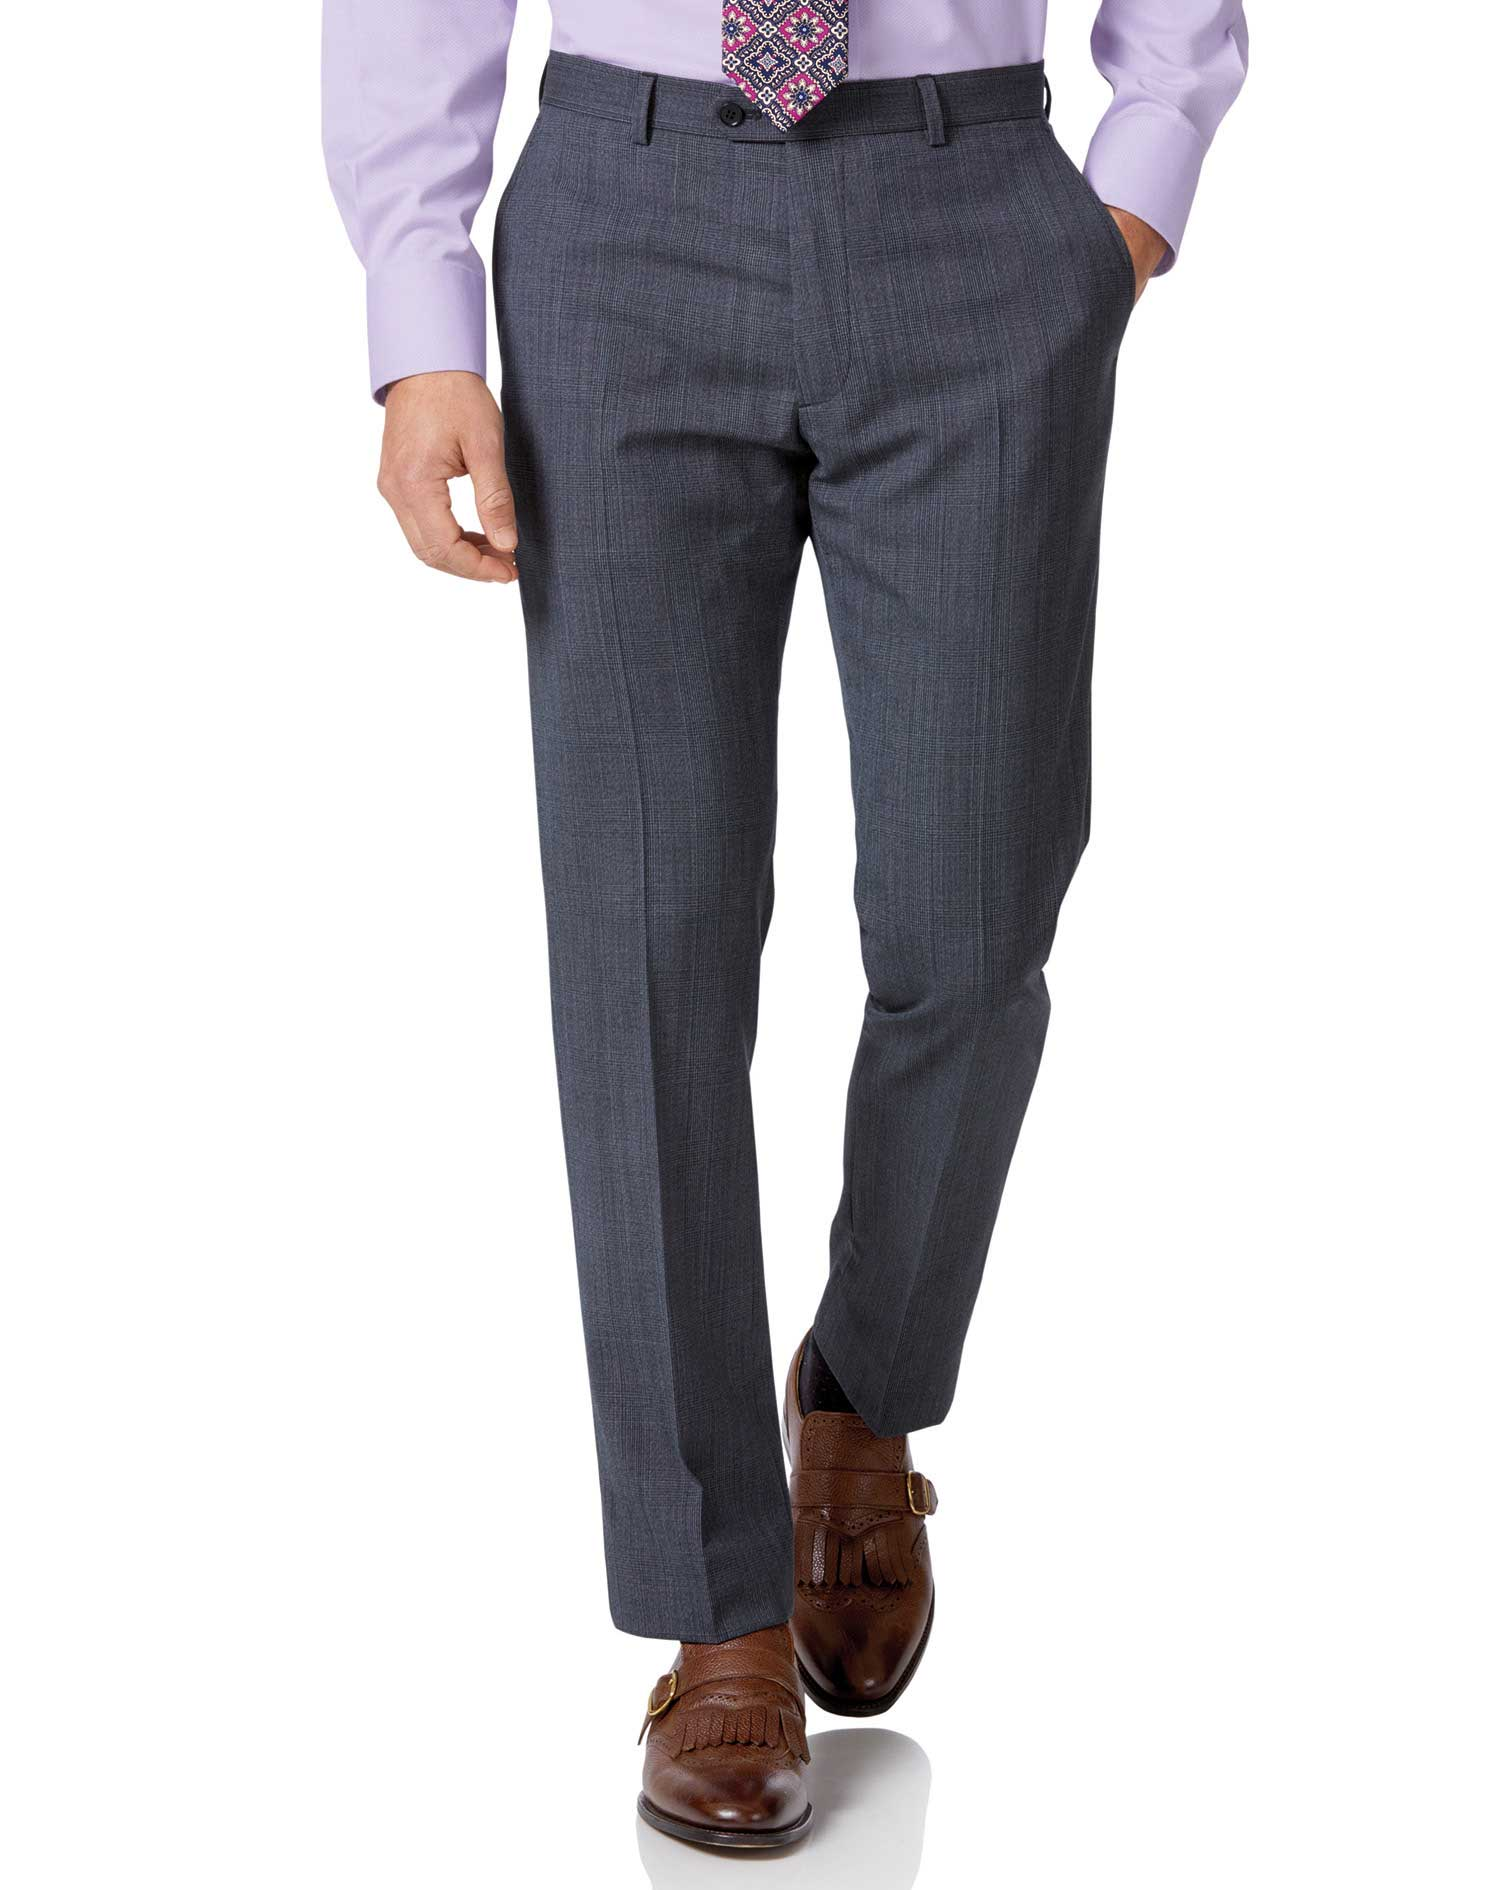 Image of Charles Tyrwhitt Airforce Blue Check Slim Fit Twist Business Suit Trousers Size W102 L81 by Charles Tyrwhitt